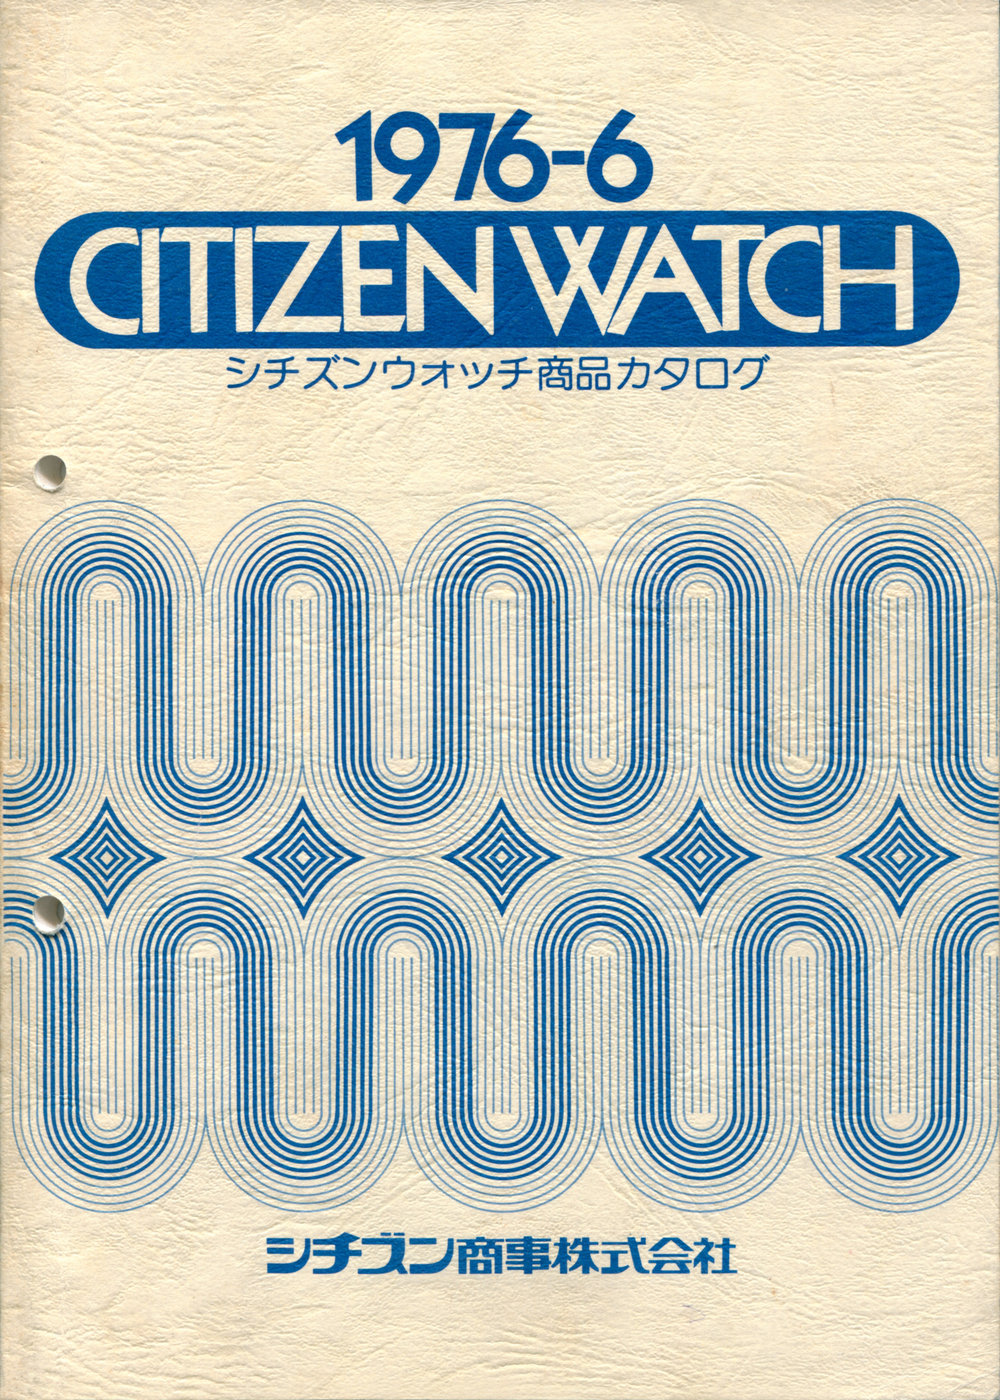 Citizen Catalog 1976-6